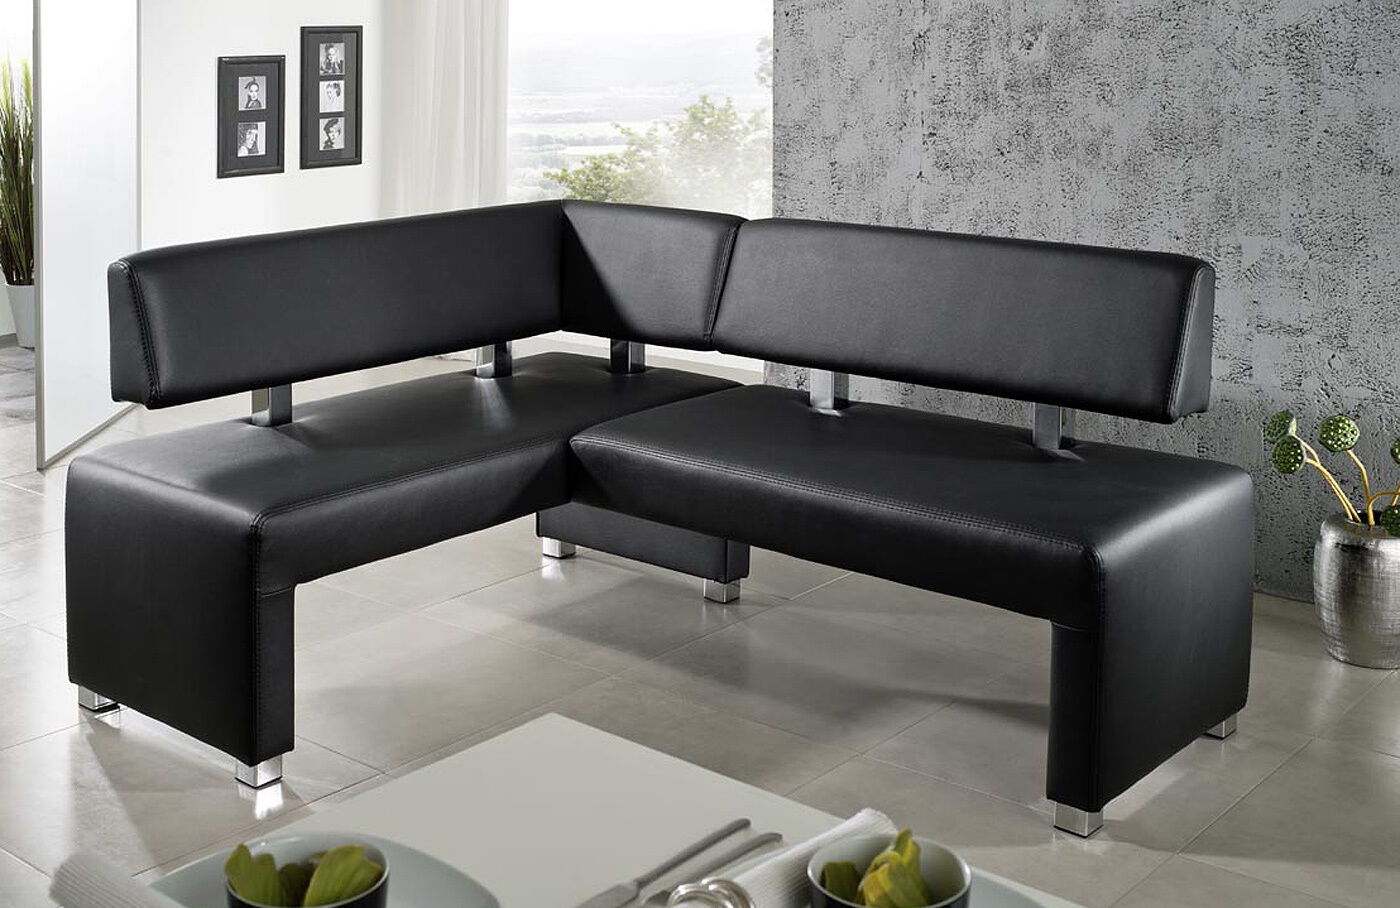 eckbankgruppe in kunstleder oder leder sitzb nke hocker. Black Bedroom Furniture Sets. Home Design Ideas